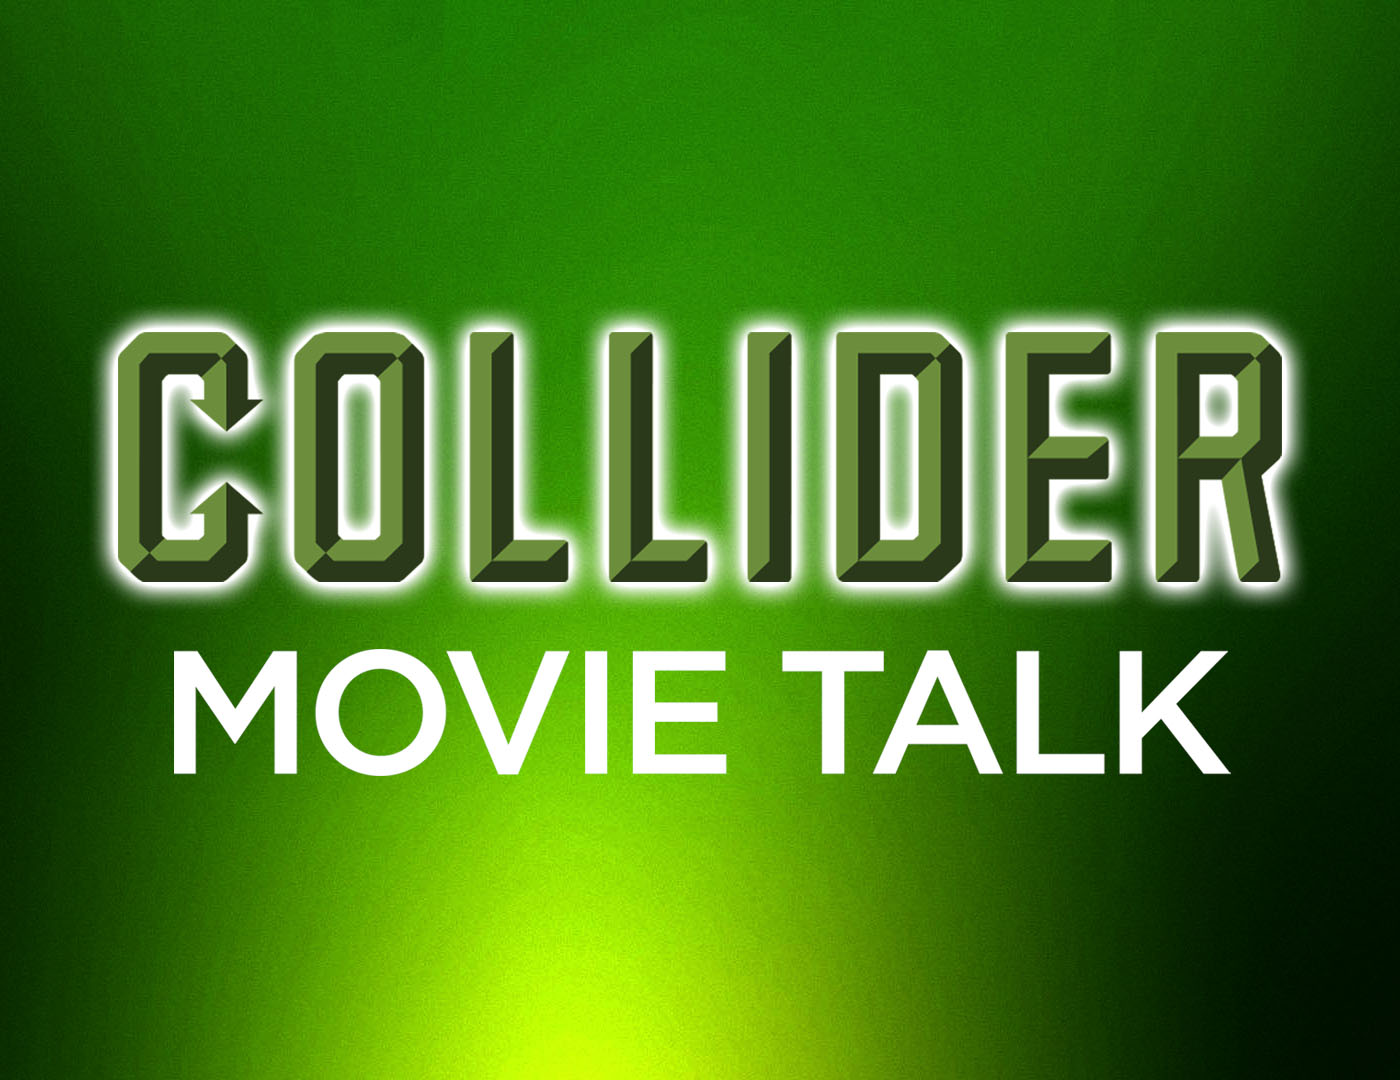 Collider Movie Talk - Spider-Man Homecoming Taking Place After Captain America: Civil War